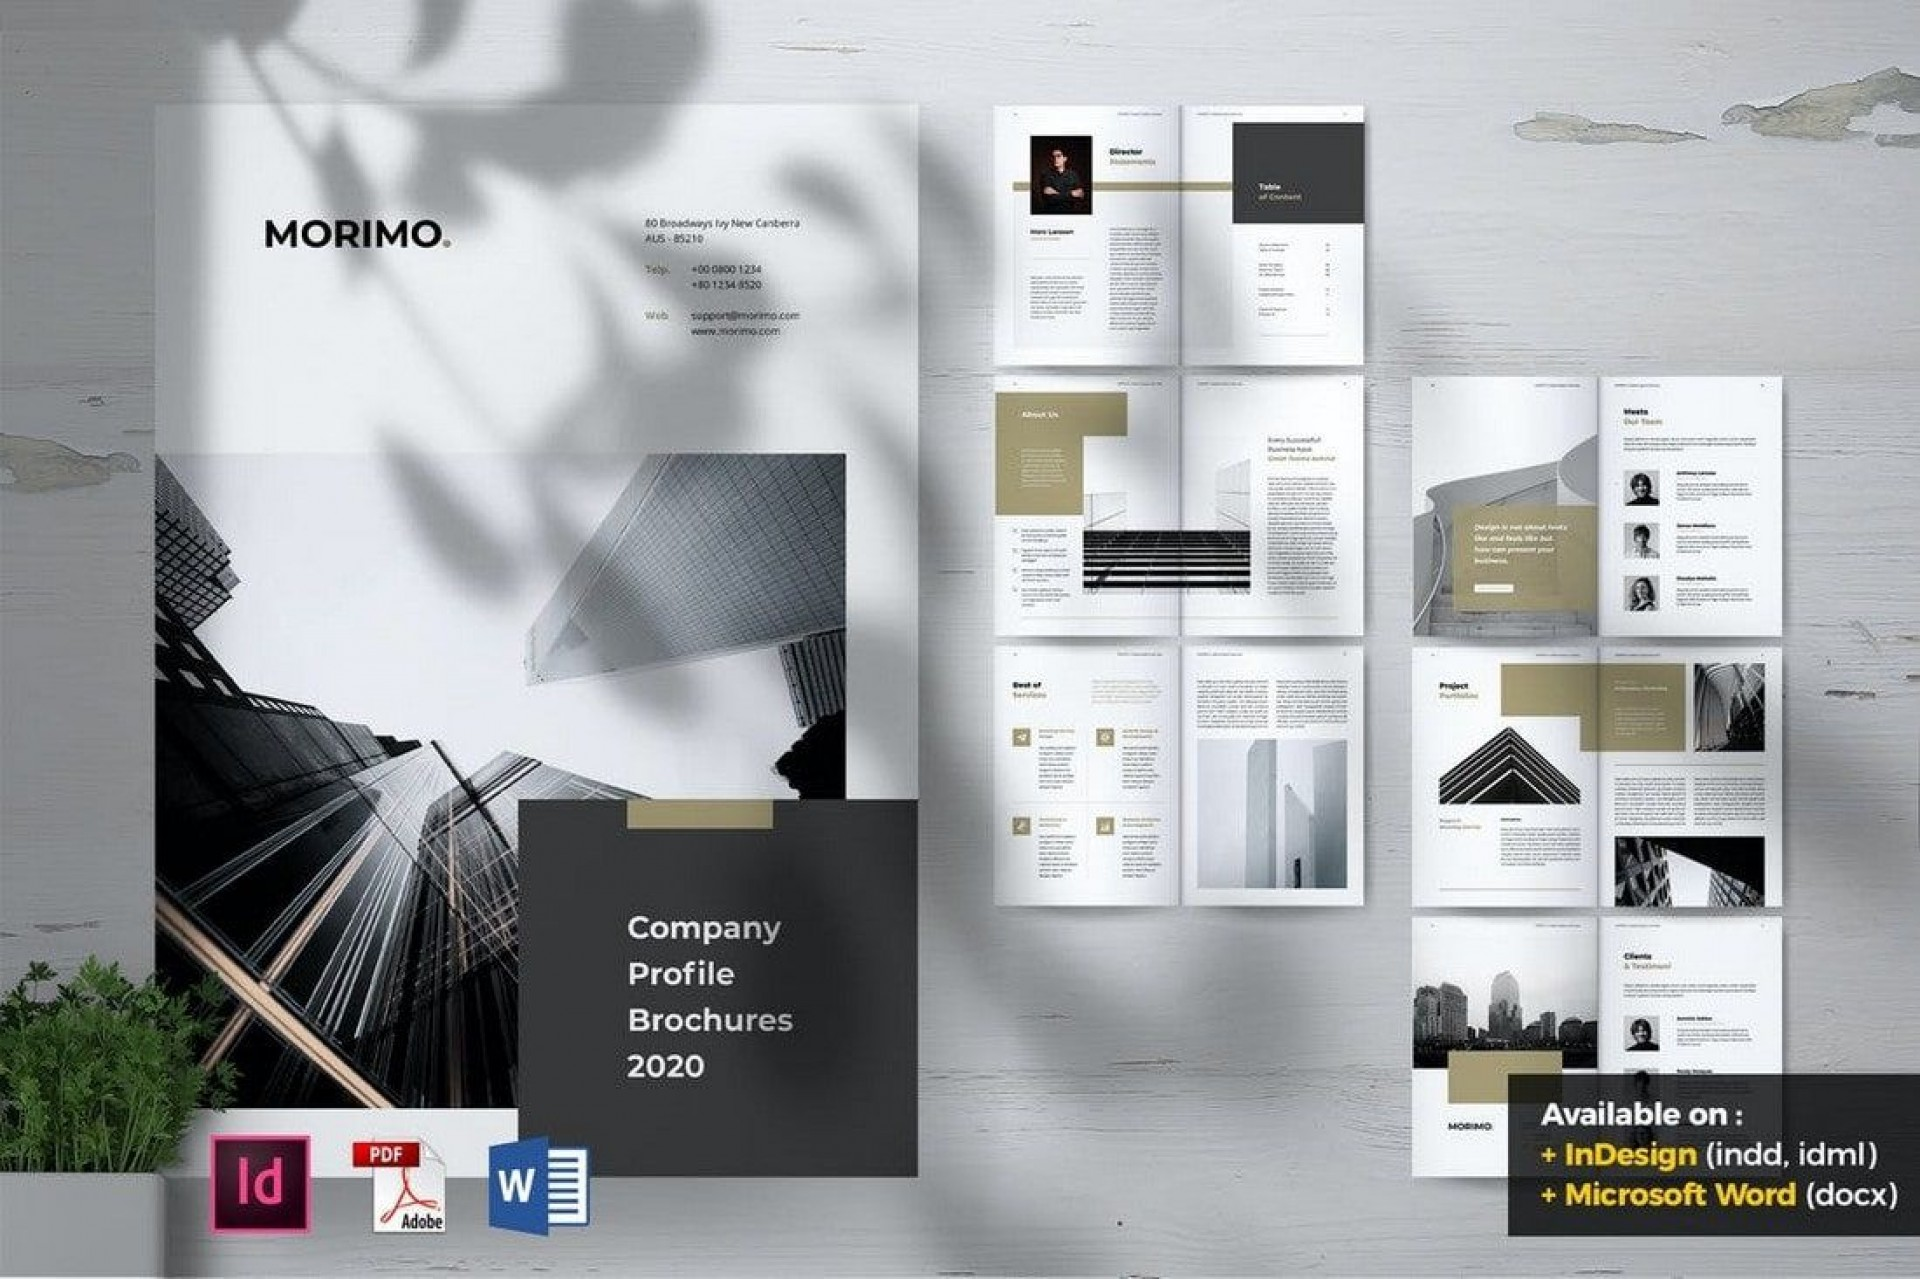 009 Fantastic Brochure Template For Wordpad High Def  Free1920